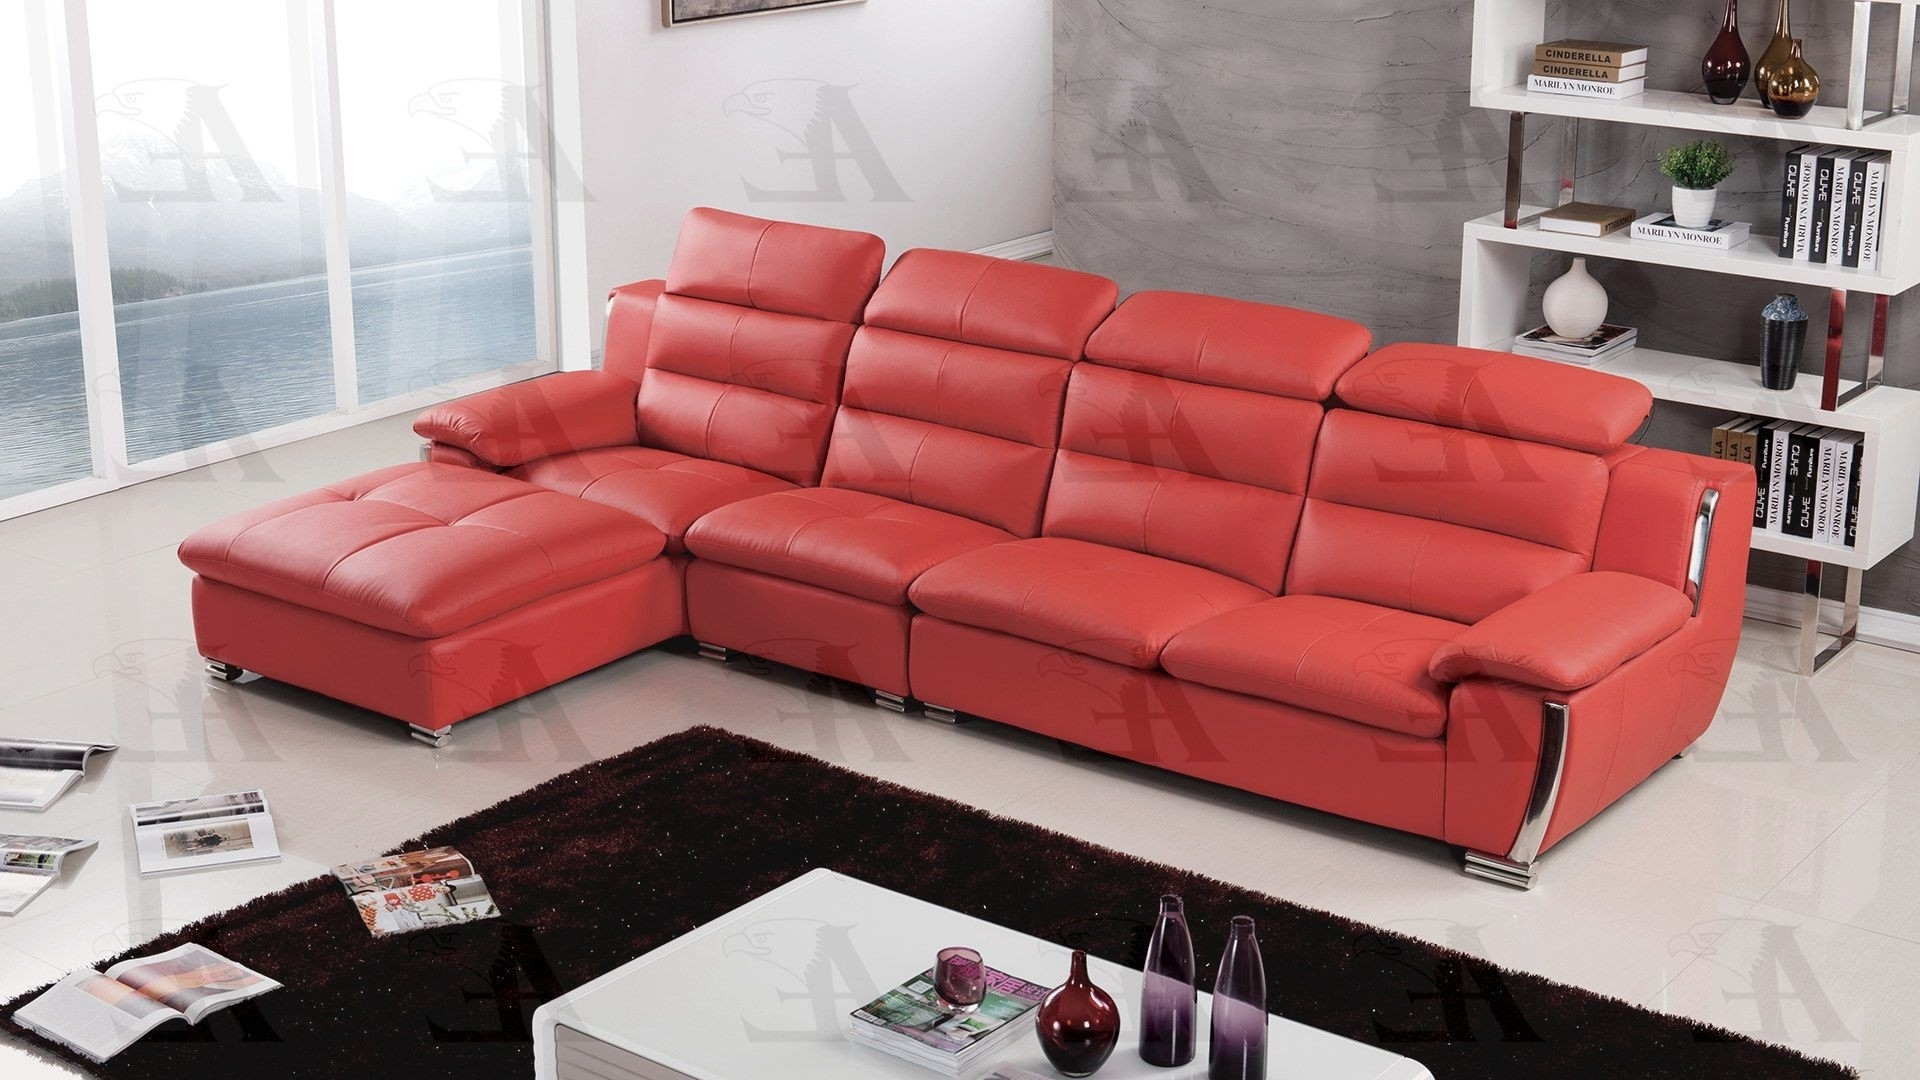 Faux Leather Sectional Inside Preferred Red Faux Leather Sectionals (View 20 of 20)